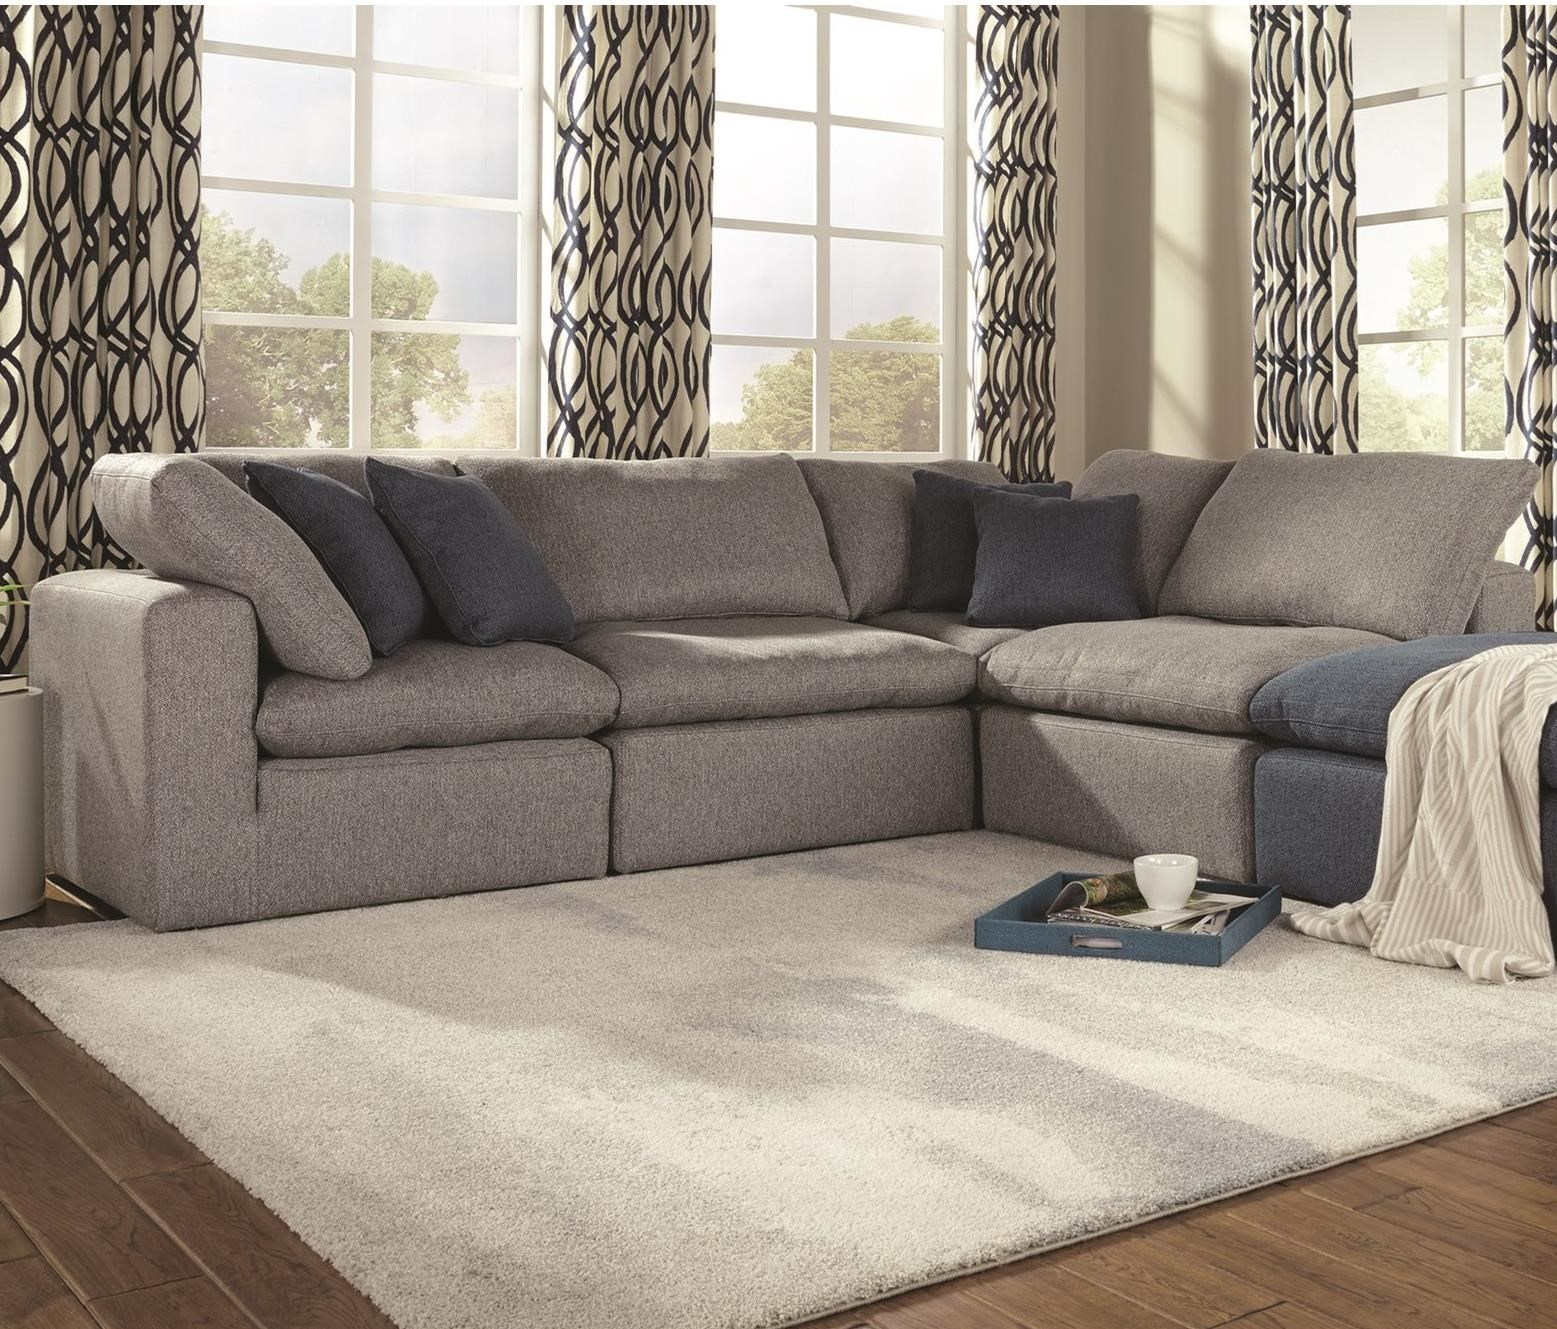 Super Palliser Bloom Casual 4 Seat Sectional Sofa With Reversible Caraccident5 Cool Chair Designs And Ideas Caraccident5Info